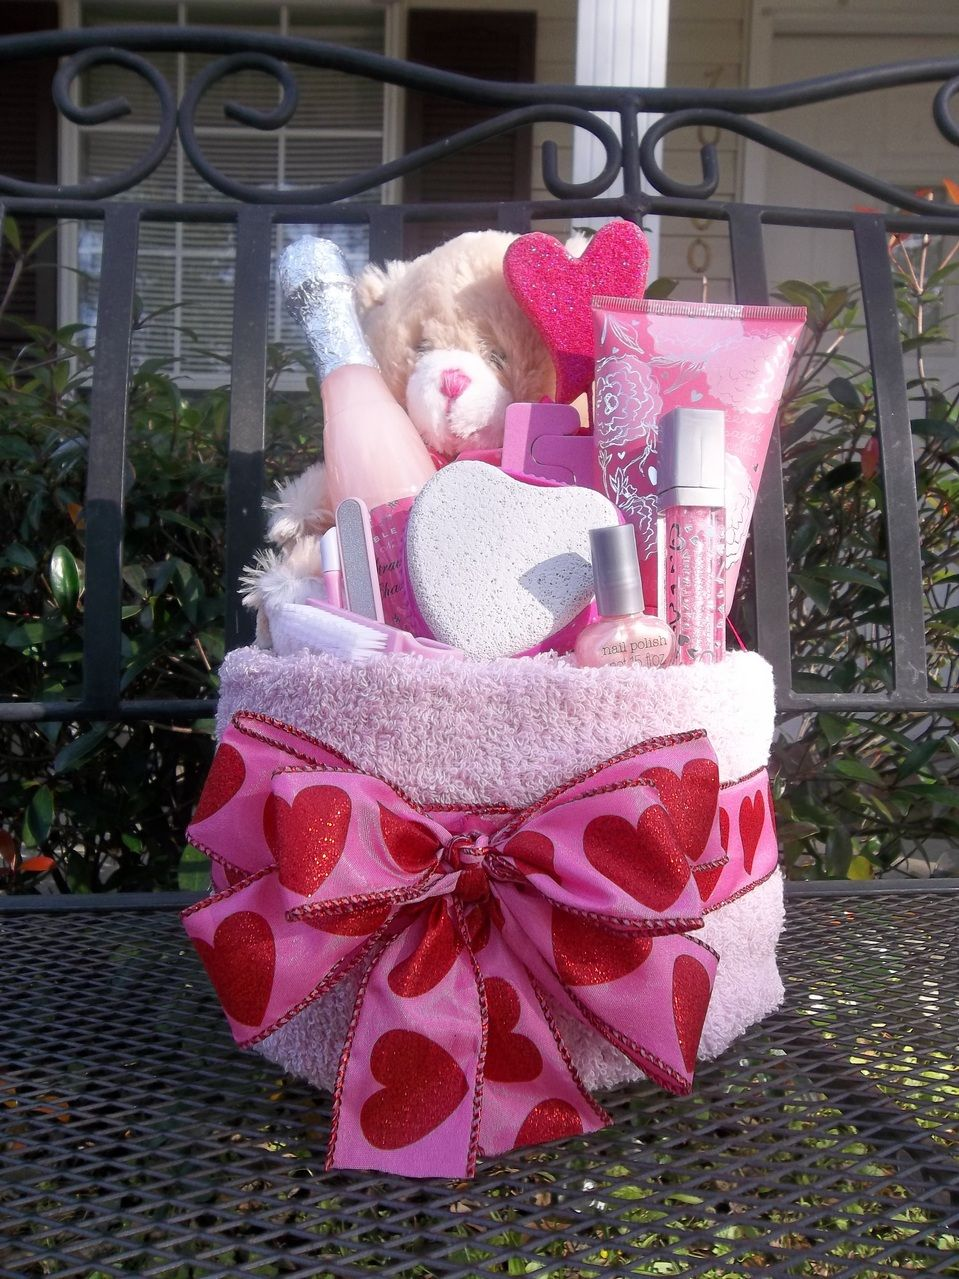 I Have For Your Consideration A Wonderful Spa Towel Cake Filled With All The Necessities Of Diy Valentines Gifts Valentines Day Baskets Valentine Gift Baskets